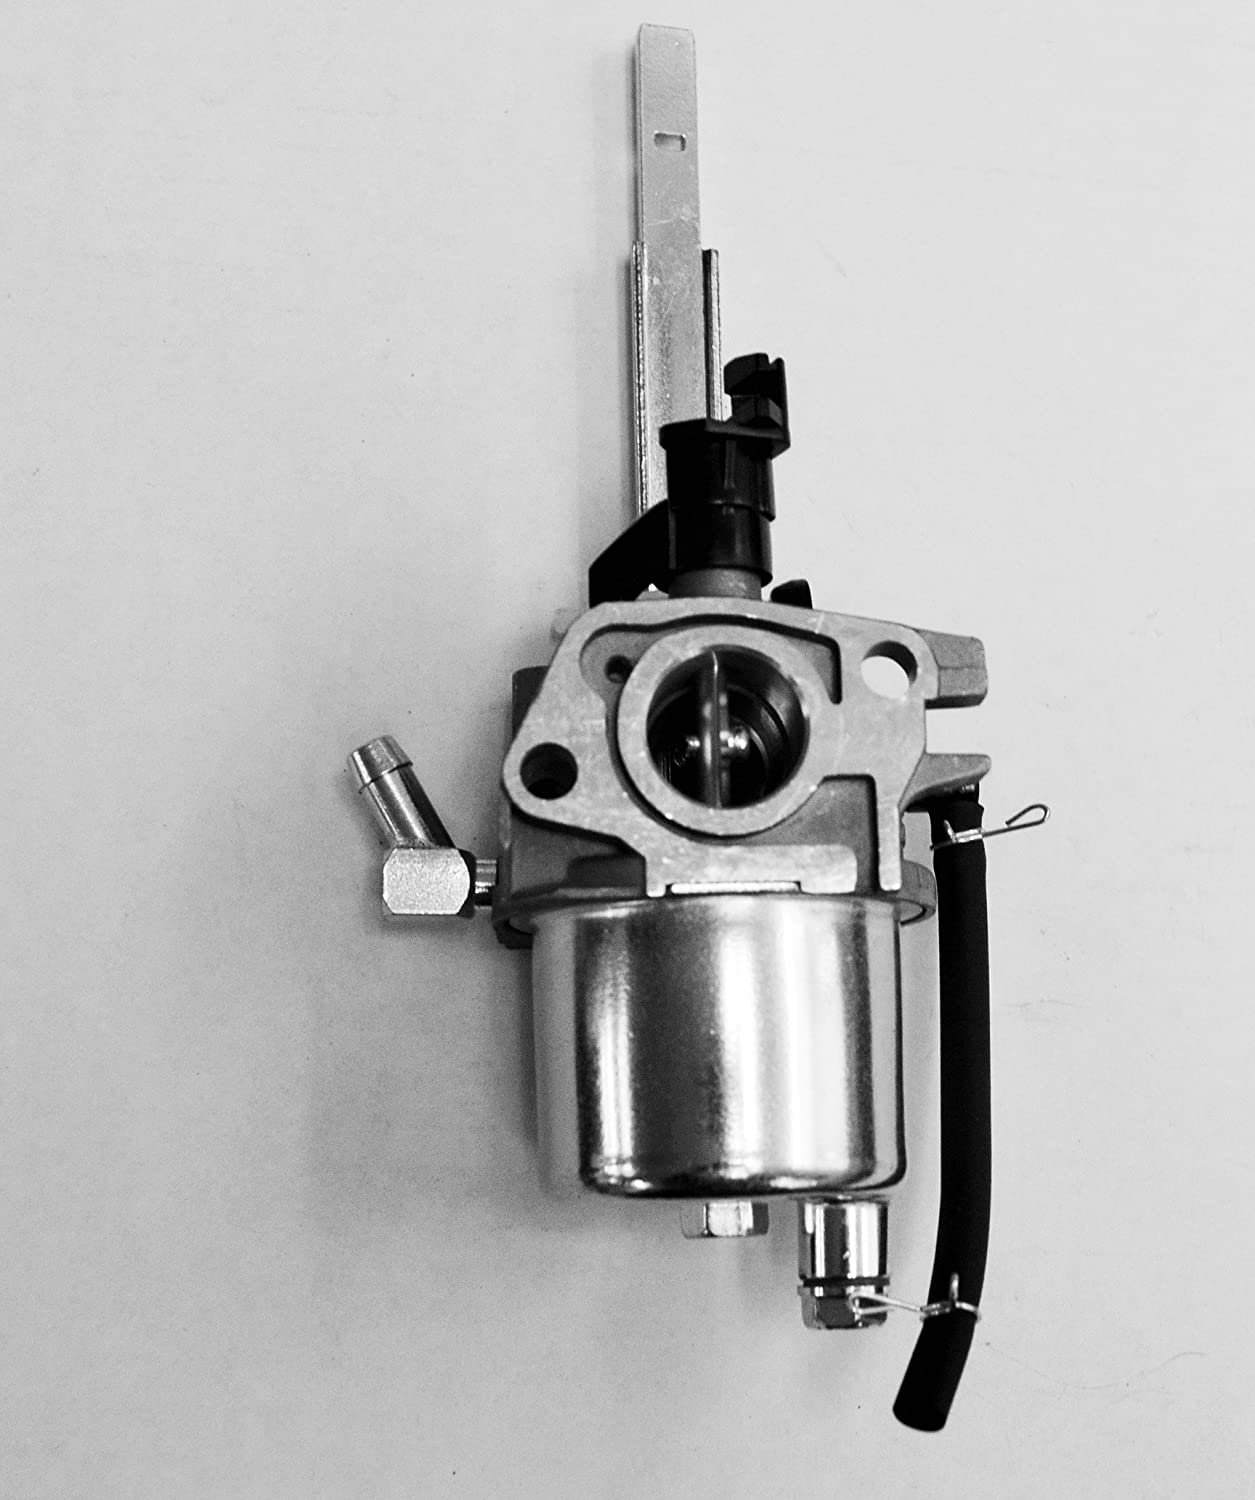 Carburetor For Ariens 20001027 Husqvarna Poulan Pro Genuine Oem Mtd Troybilt 7531225 X3 532436565 With Lct 208cc Snow Engine Garden Outdoor